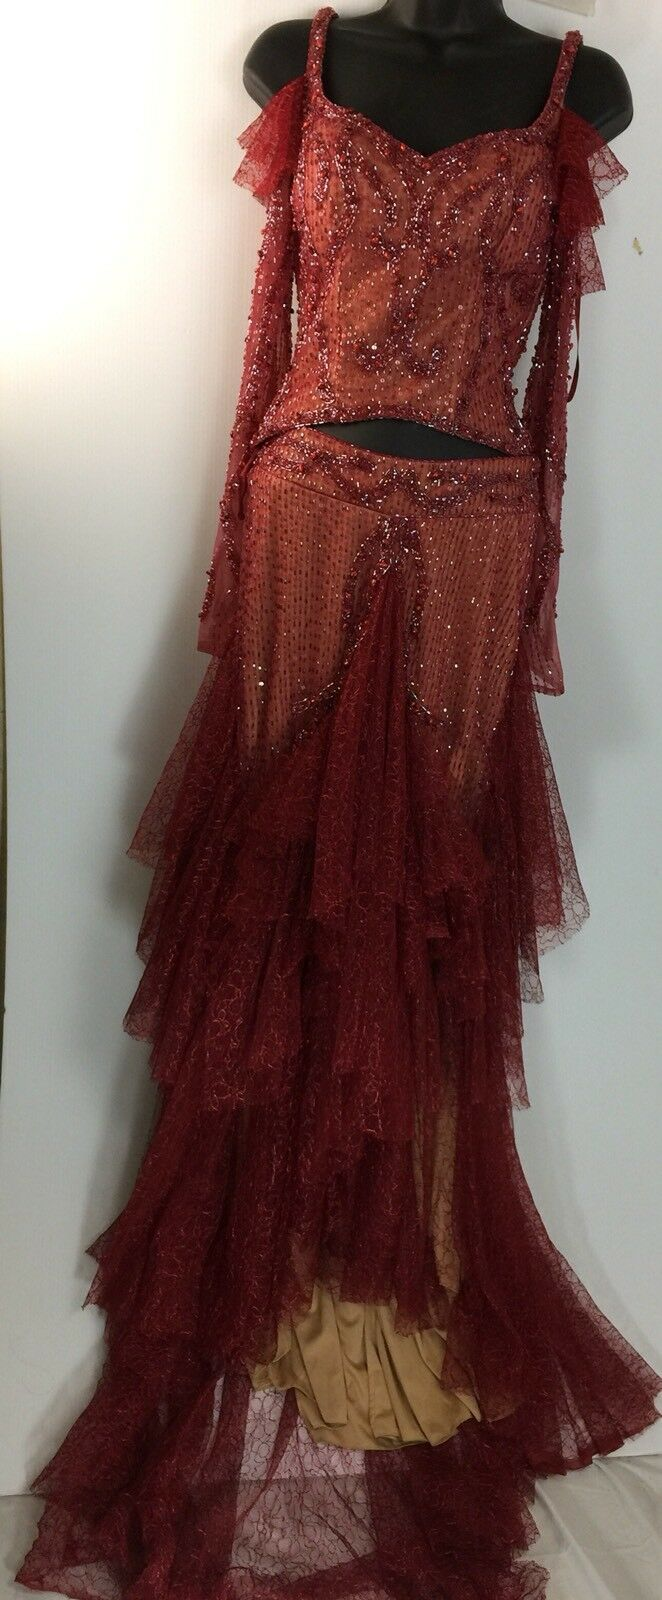 Sherry Hunte Couture Stunning Beaded Evening Red Top Skirt Two Piece Set 4  299